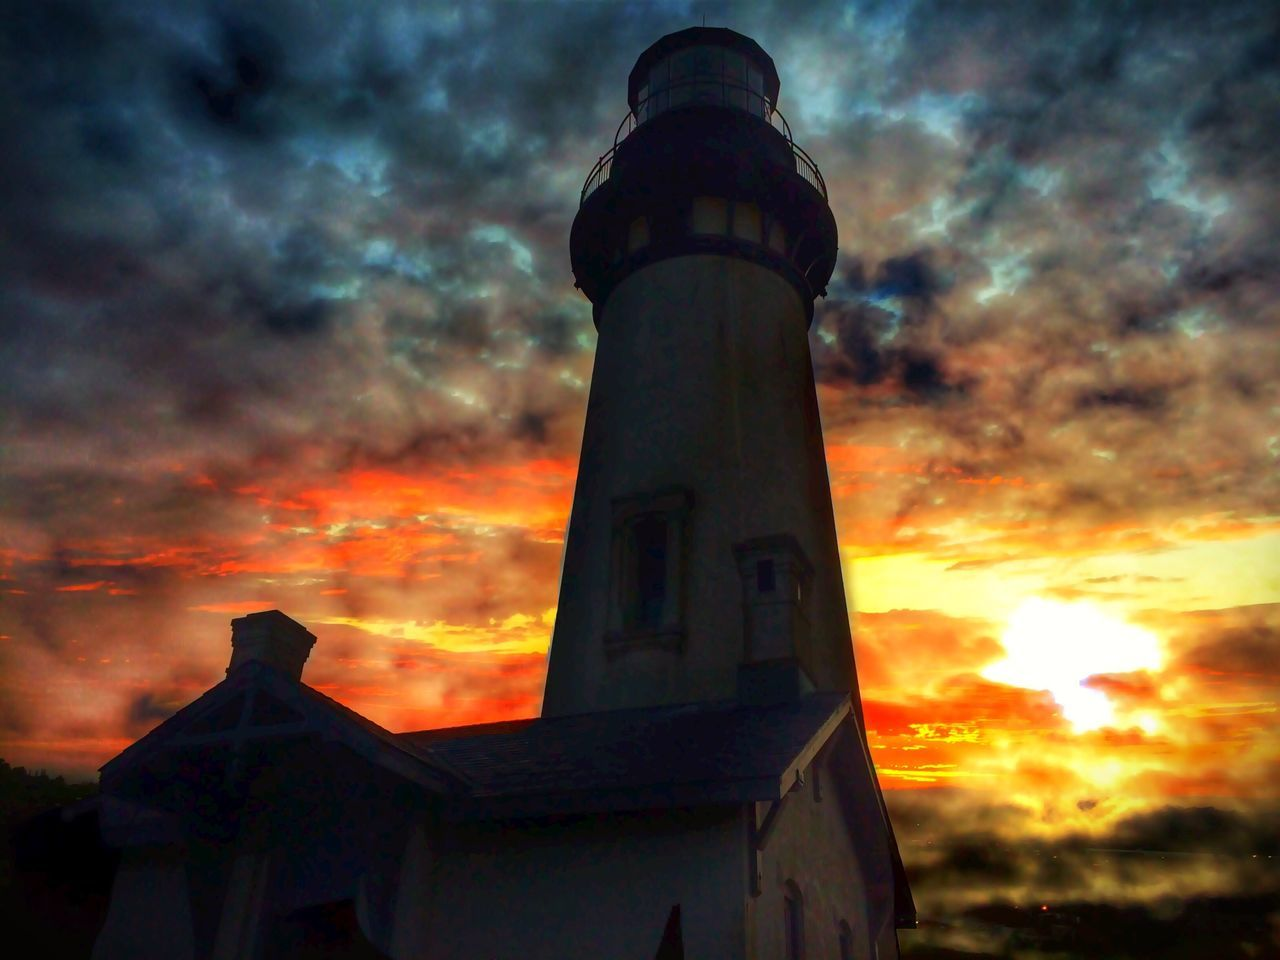 Low Angle View Of Lighthouse Against Cloudy Sky During Sunset